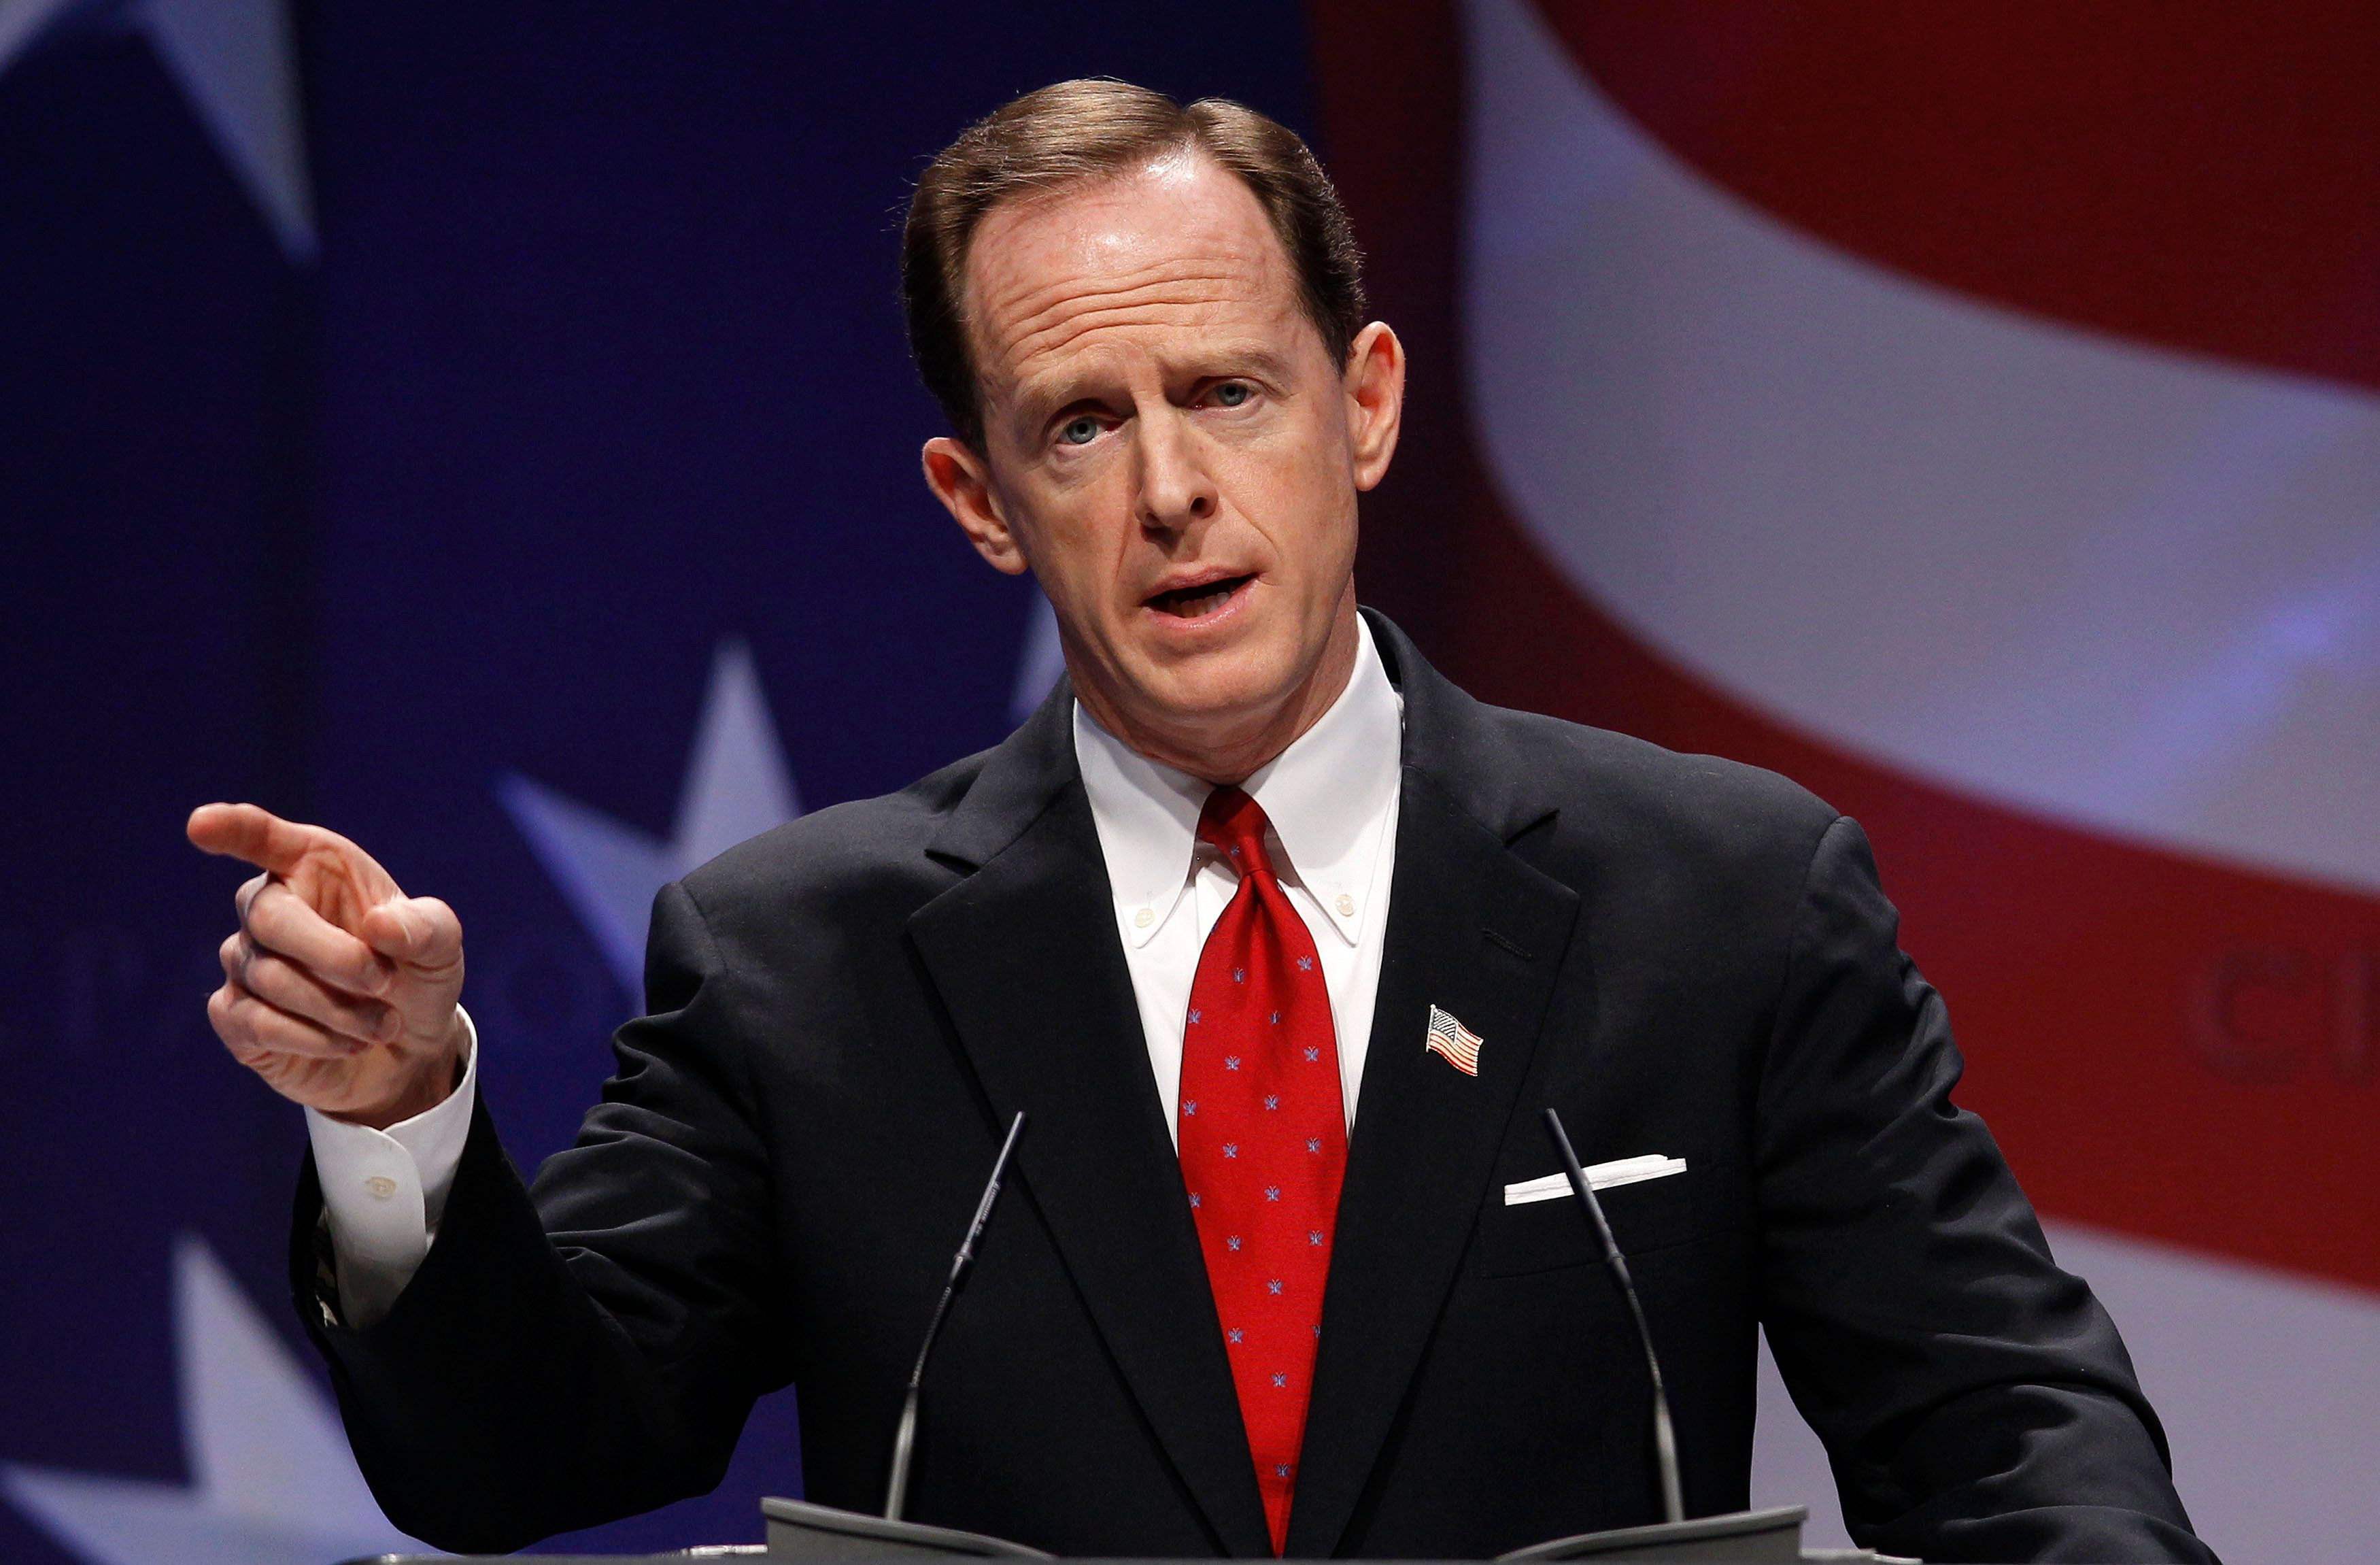 FILE PHOTO --  U.S. Senator Pat Toomey (R-PA) speaks to the 38th annual Conservative Political Action Conference meeting in Washington DC, U.S. February 10, 2011.   REUTERS/Larry Downing/File Photo